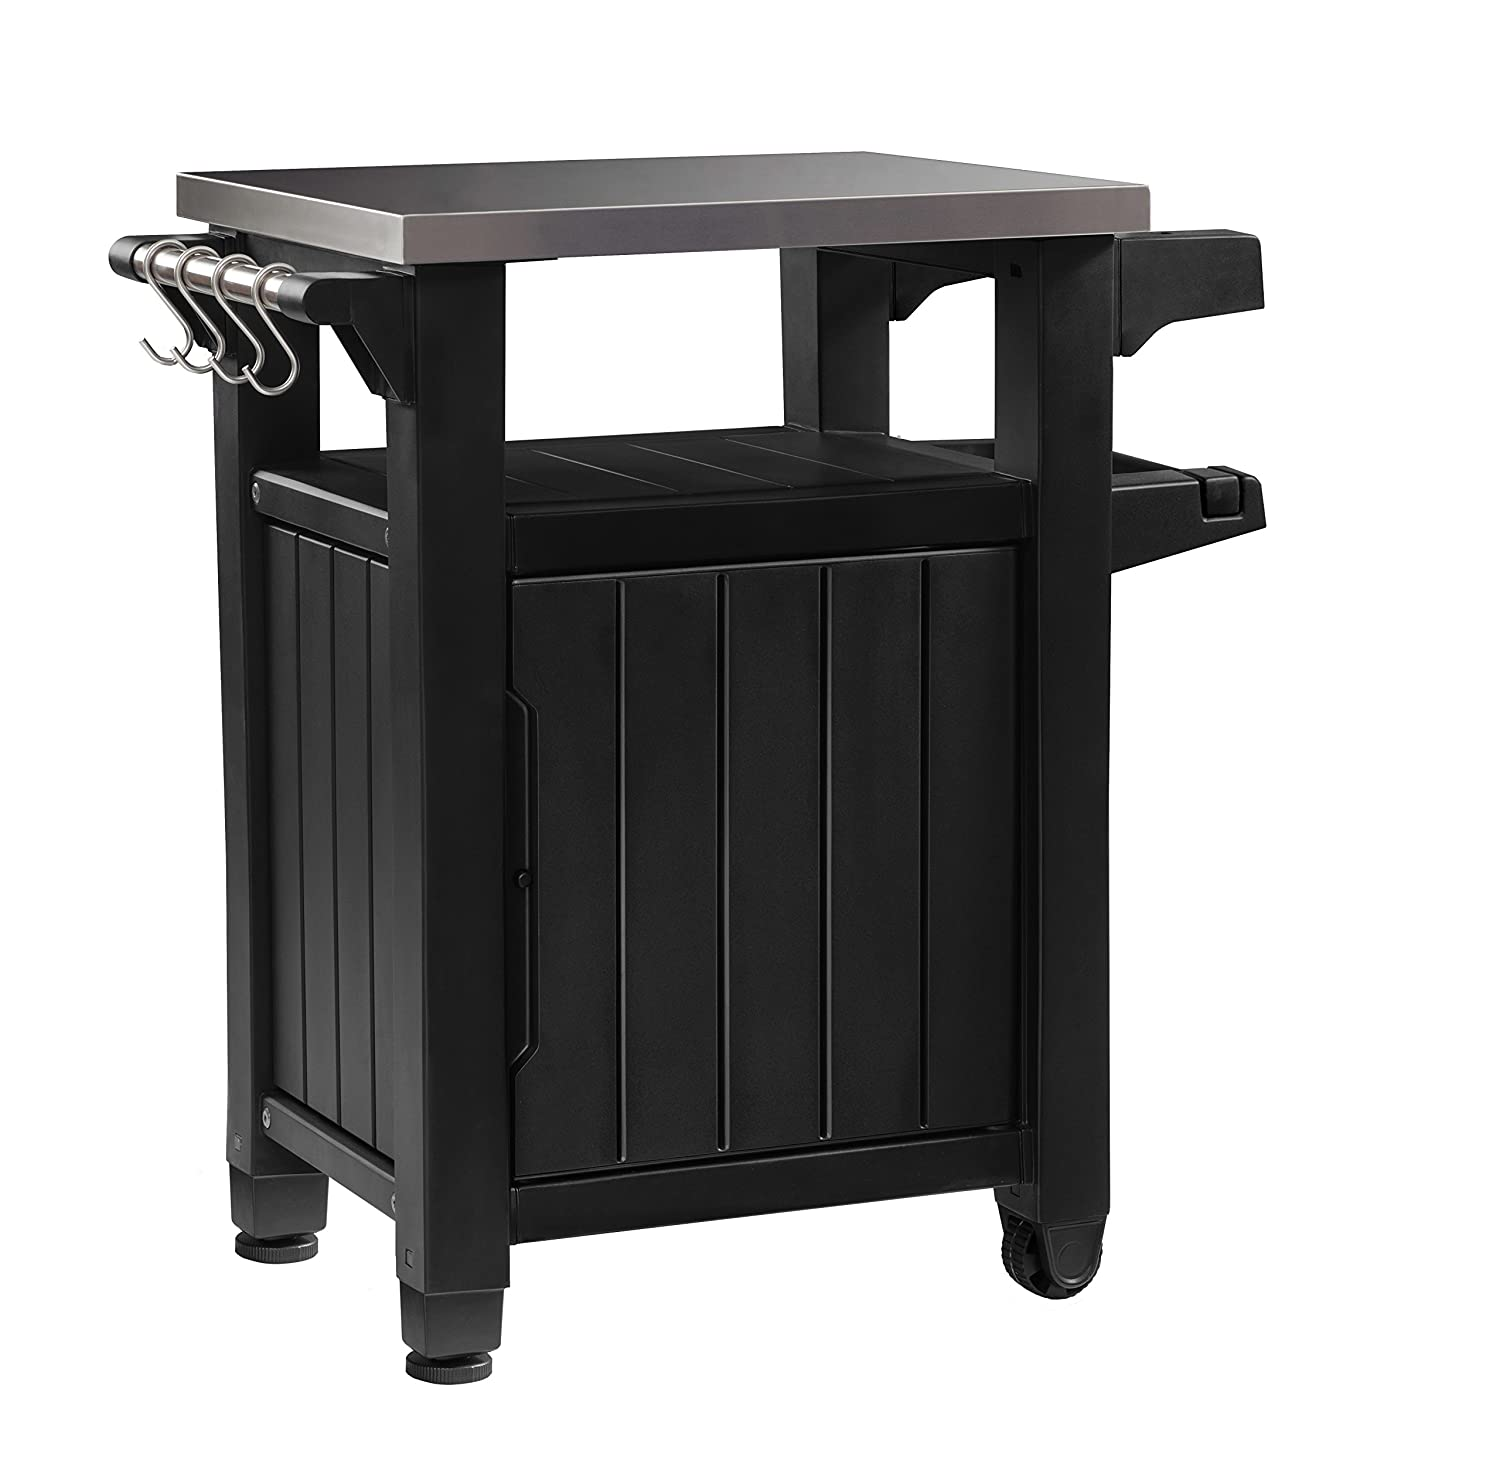 Keter Outdoor Portable Entertainment Kitchen Storage and Food Station, Graphite, 70 x 54 x 90 cm 17202968